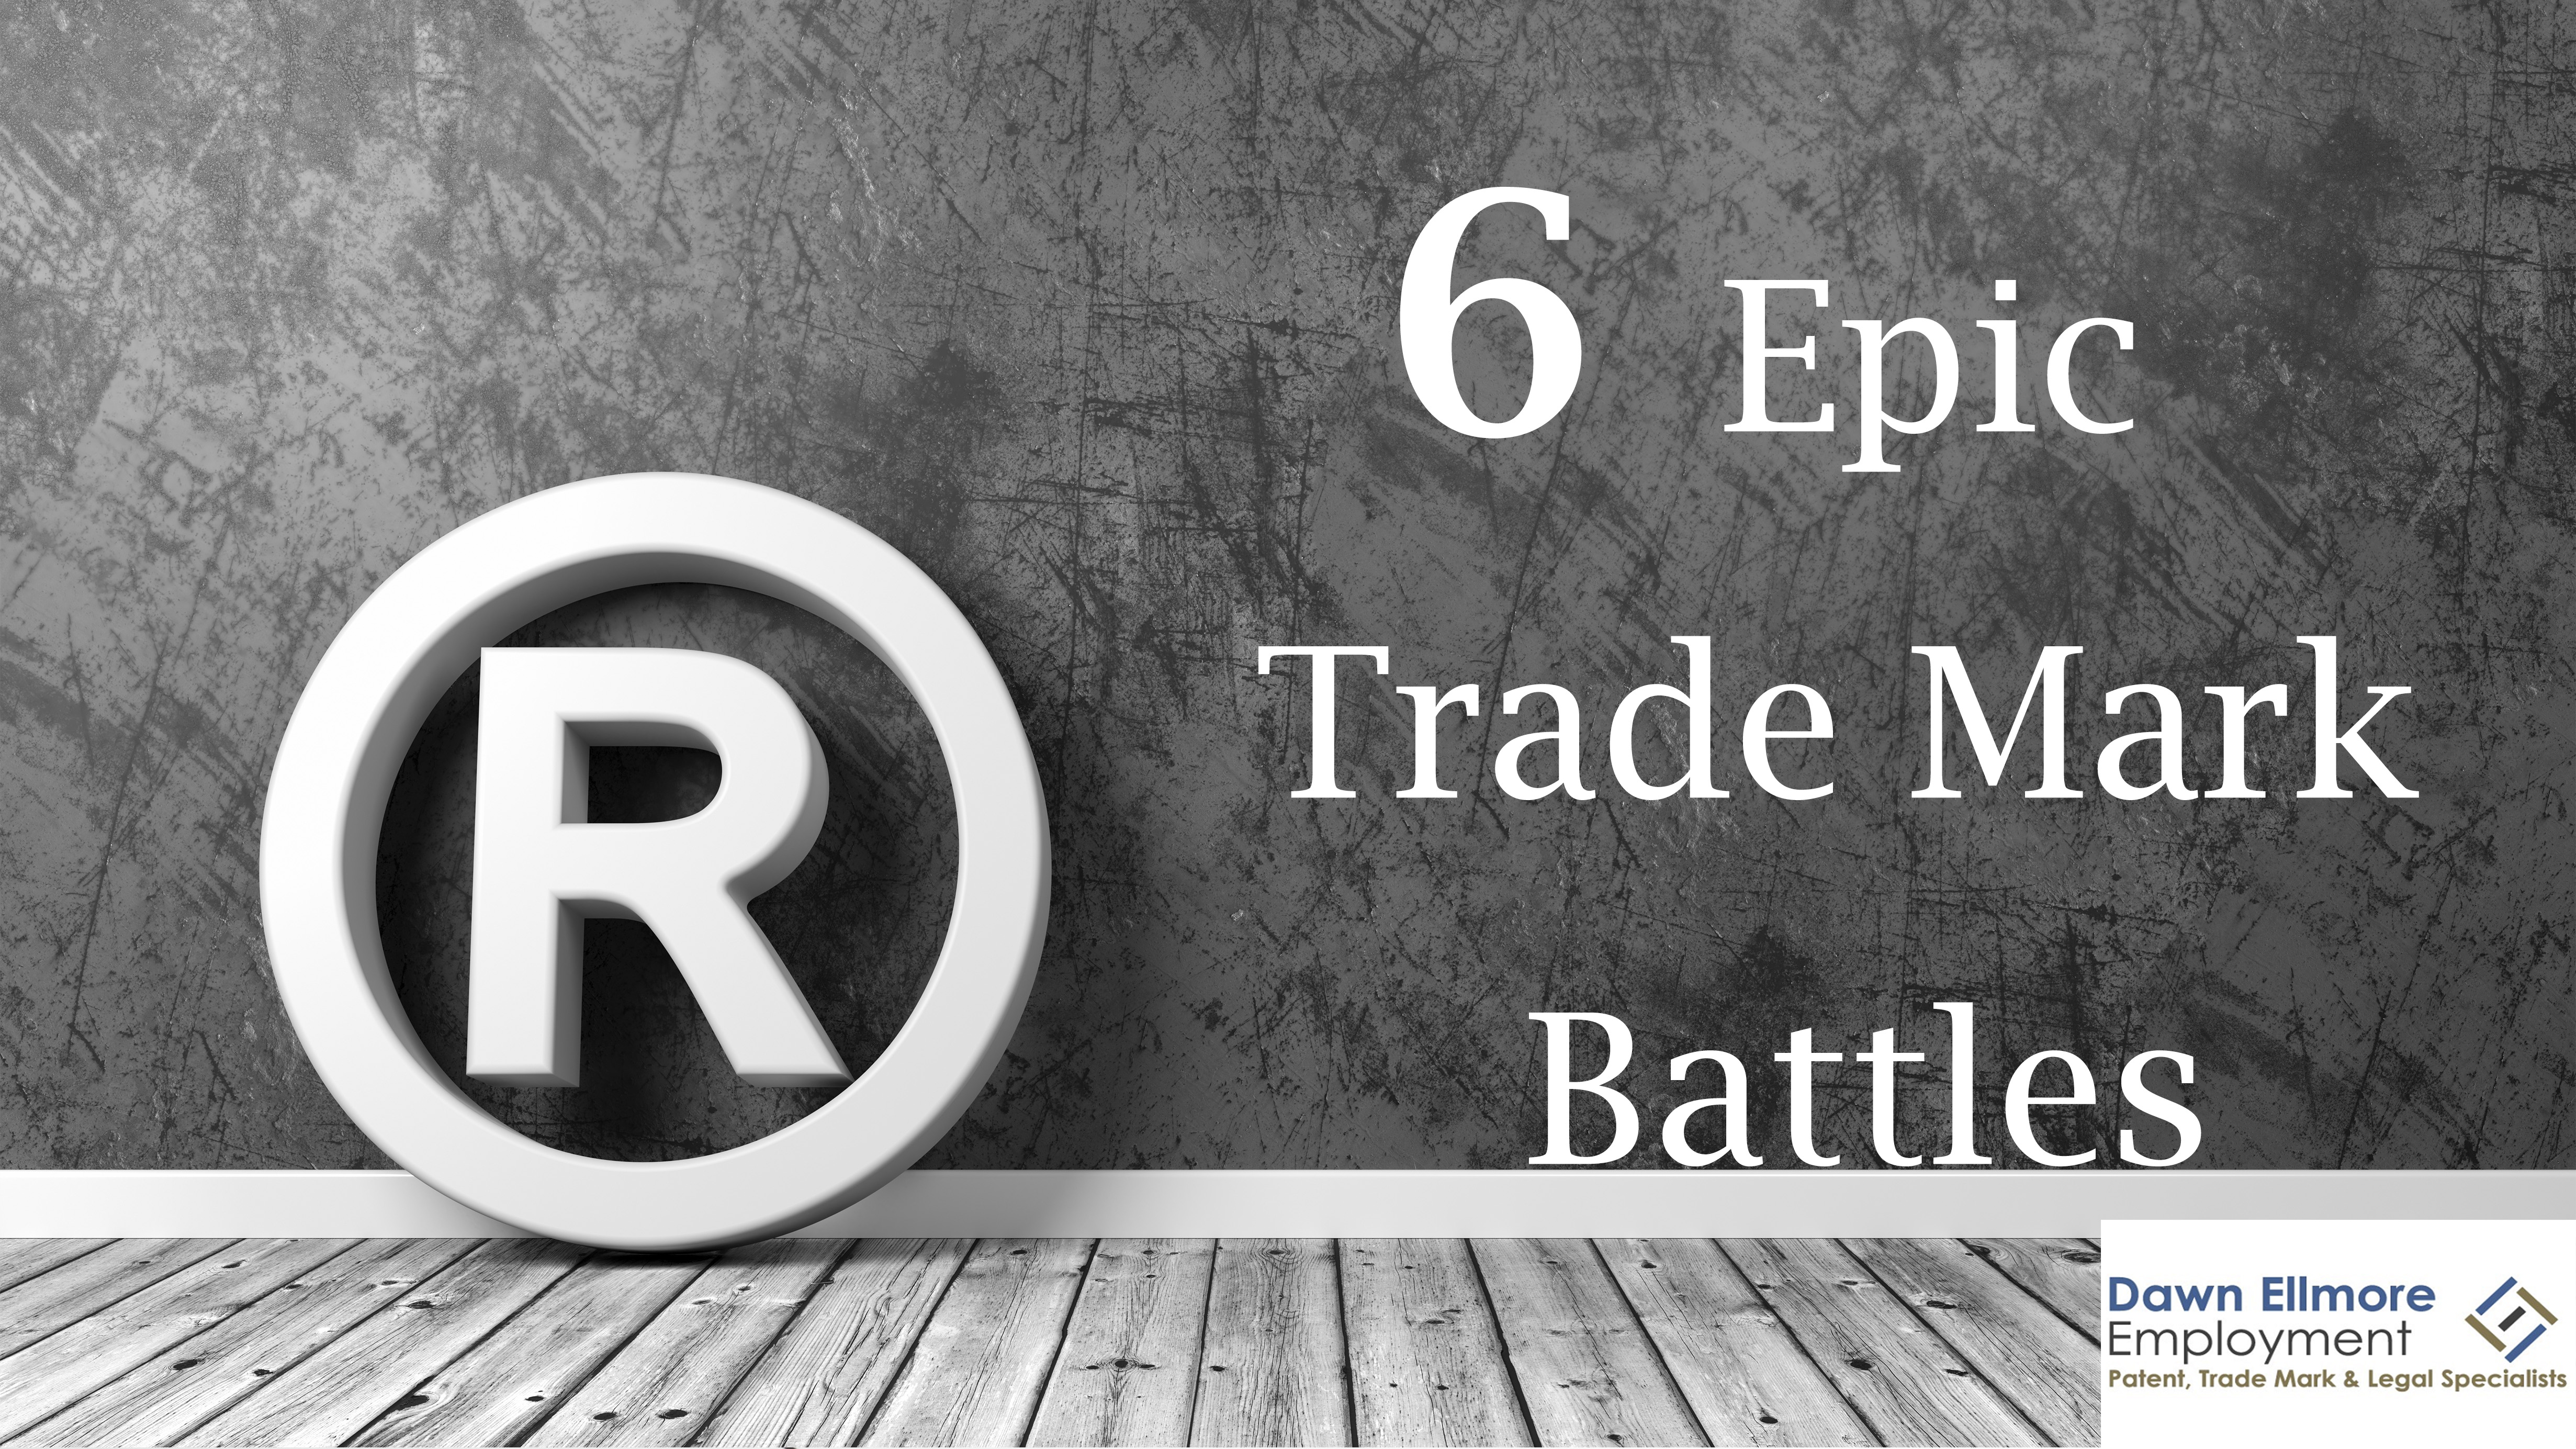 6 epic trade mark battles – the winners and losers